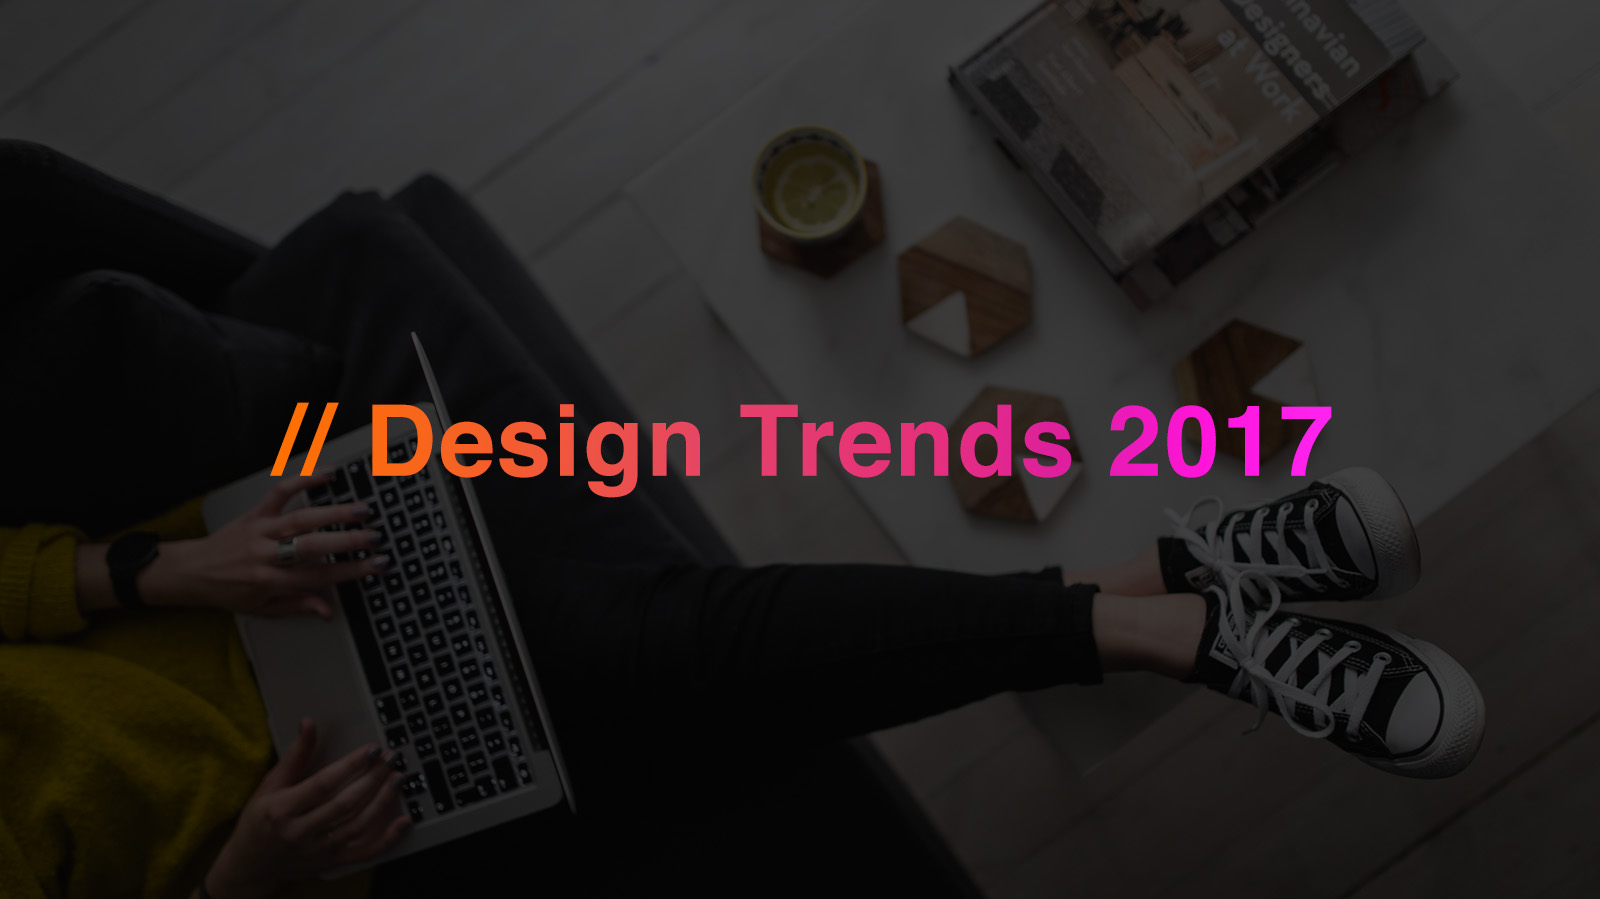 What are the most popular design trends in 2017?